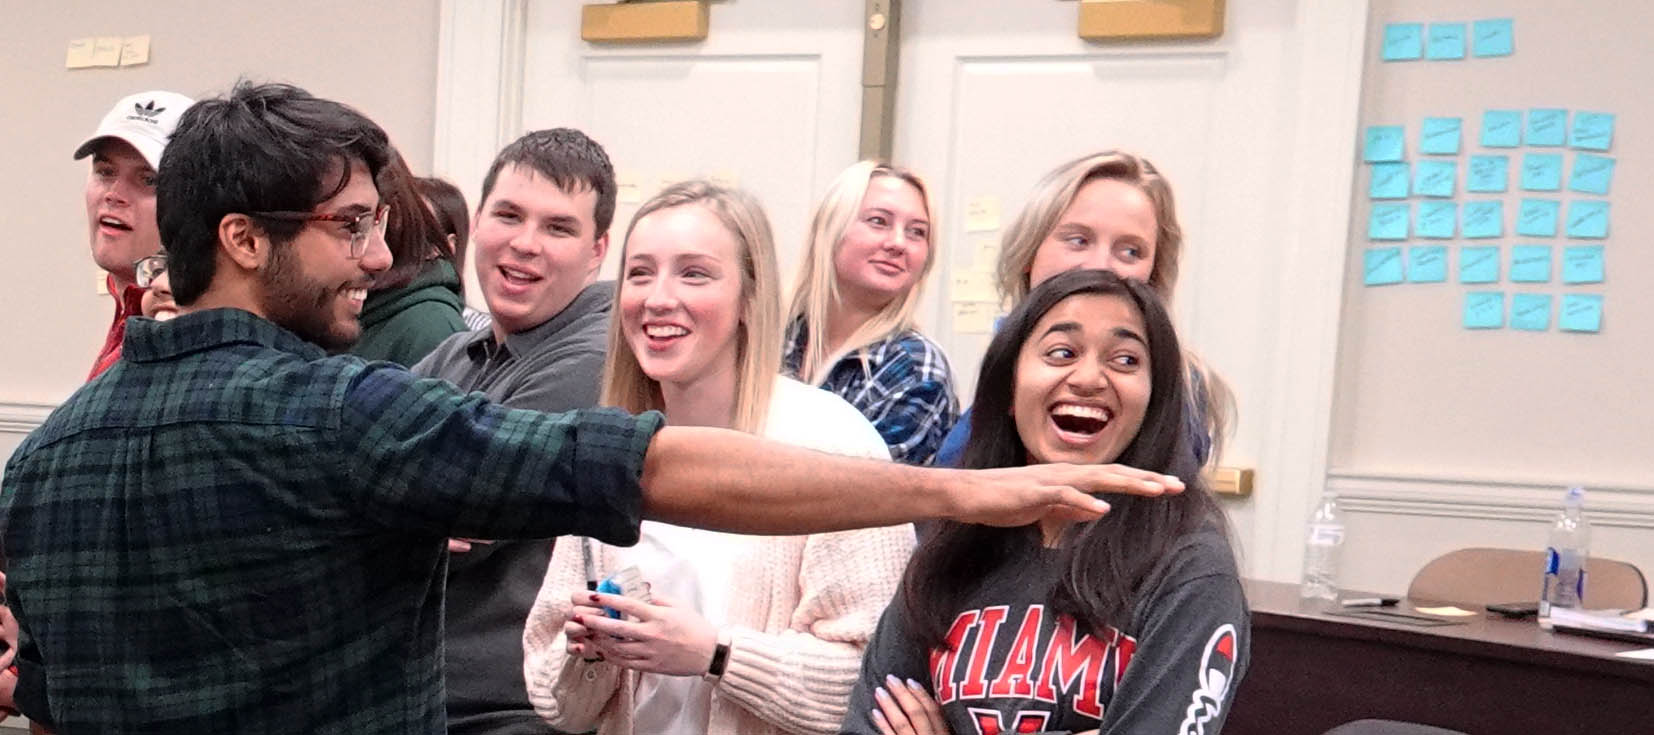 Male student pointing as female students laugh